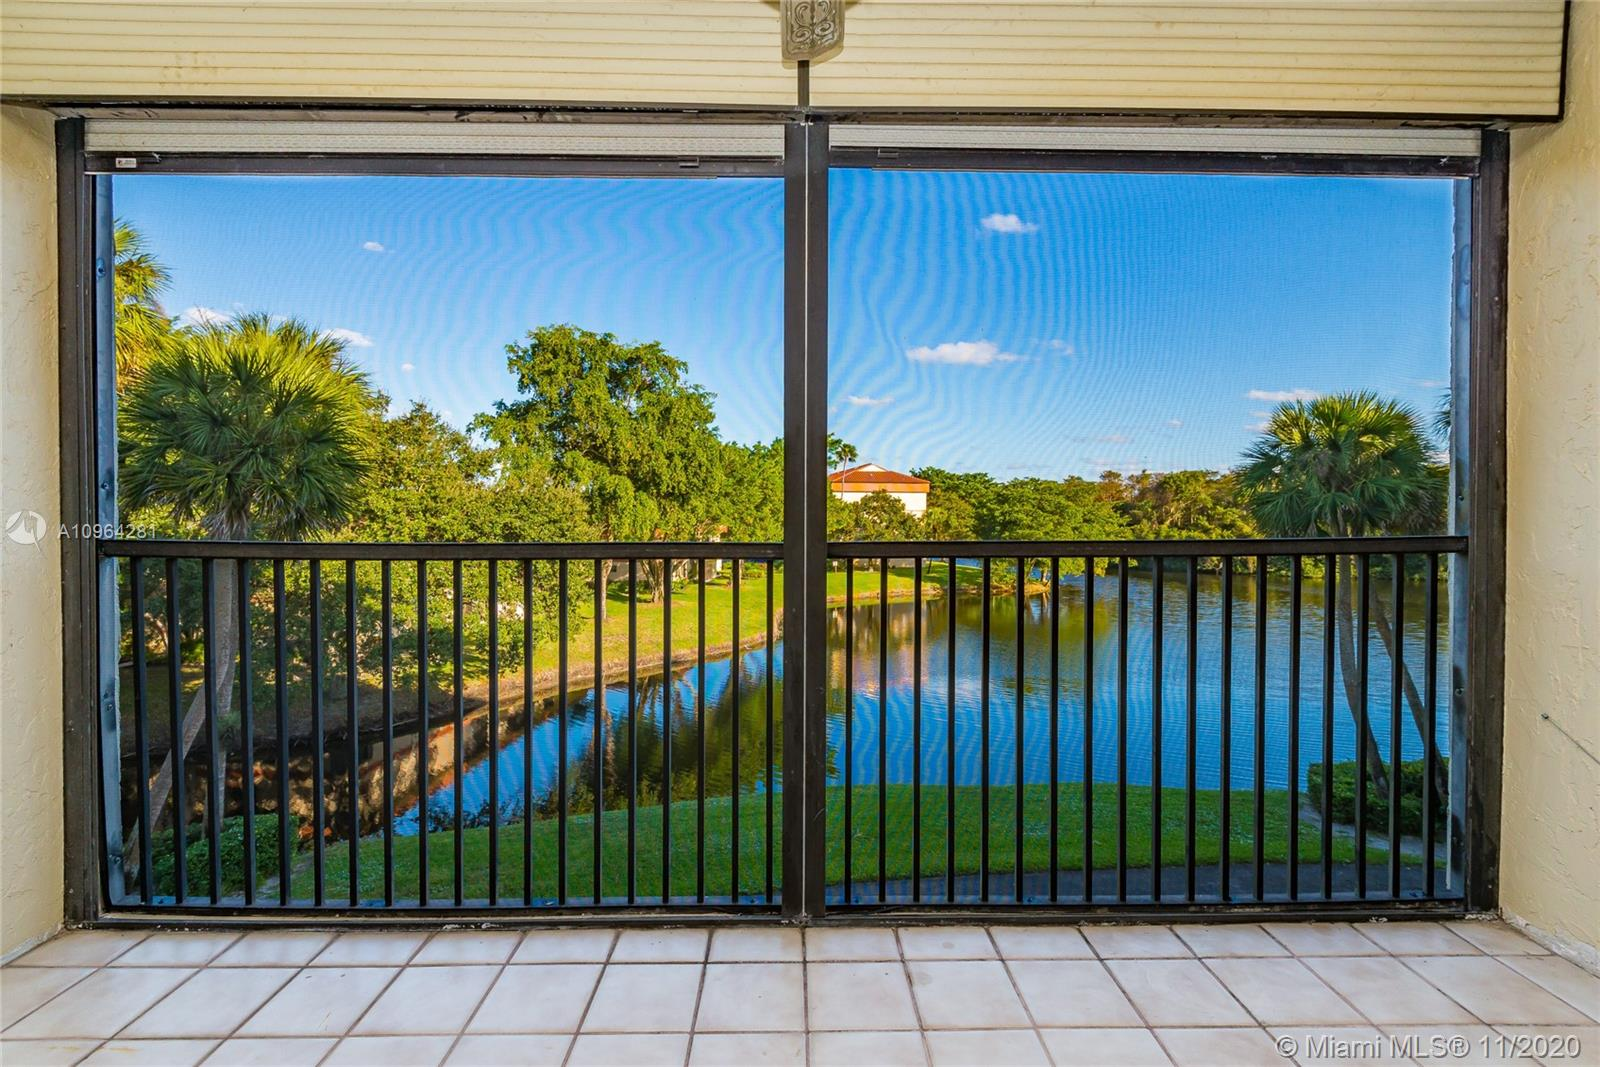 Welcome to Tradewinds, highly desired neighborhood in the Township. This beautiful 2/2 has tile throughout, updated kitchen, breathtaking lake view, a plethora of amenities and centrally located. Don't miss out on this opportunity. Can Lease DAY 1, Great for investors!